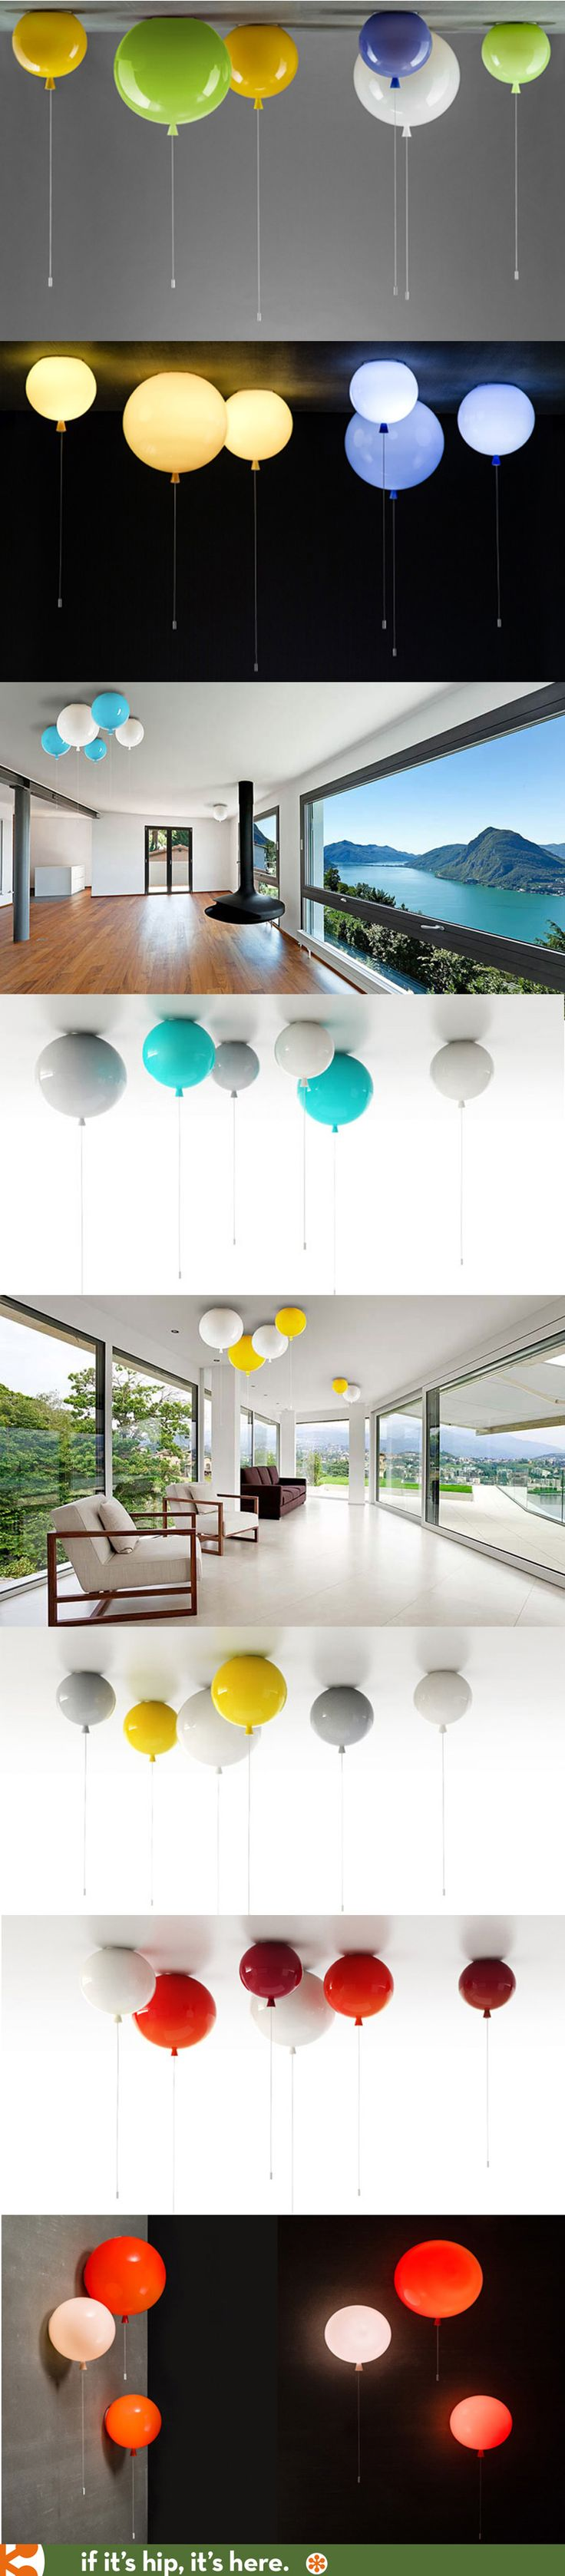 Glass Balloon Lights for ceiling or wall